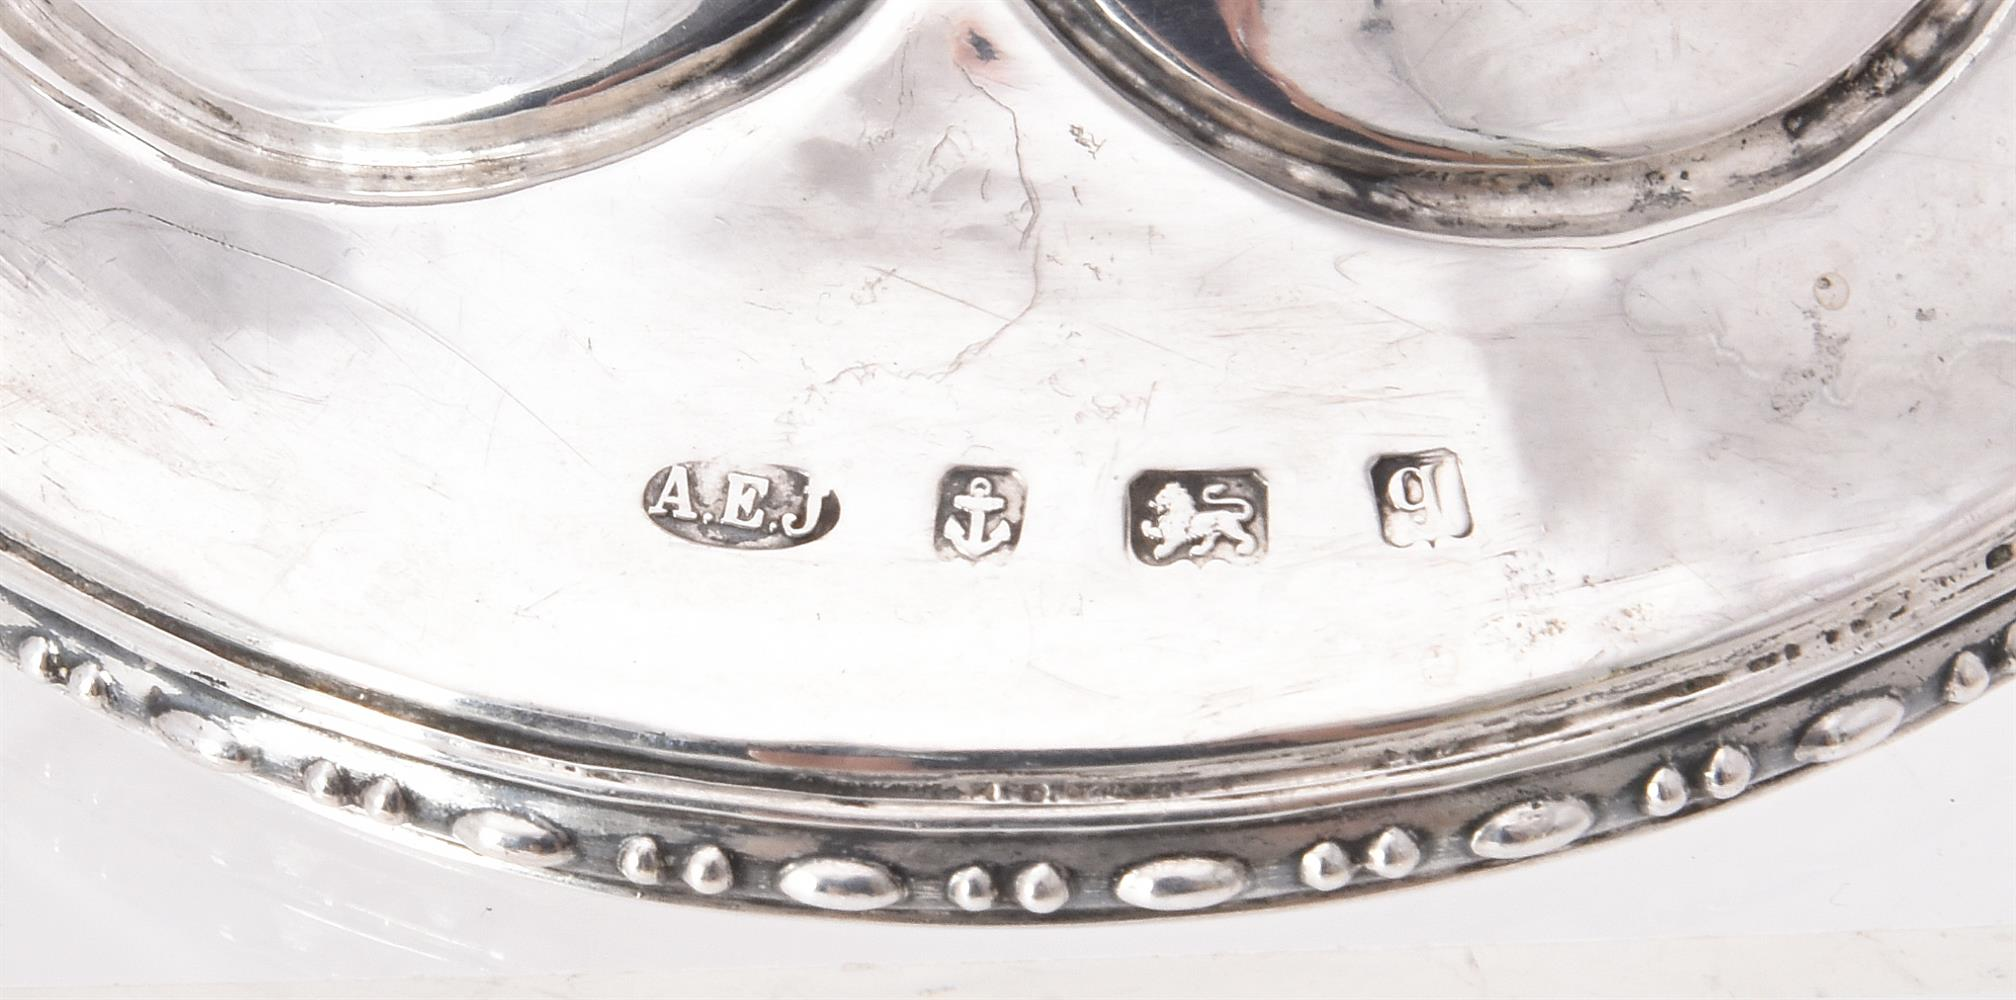 A pair of Arts & Crafts silver candlesticks by Albert Edward Jones - Image 2 of 2